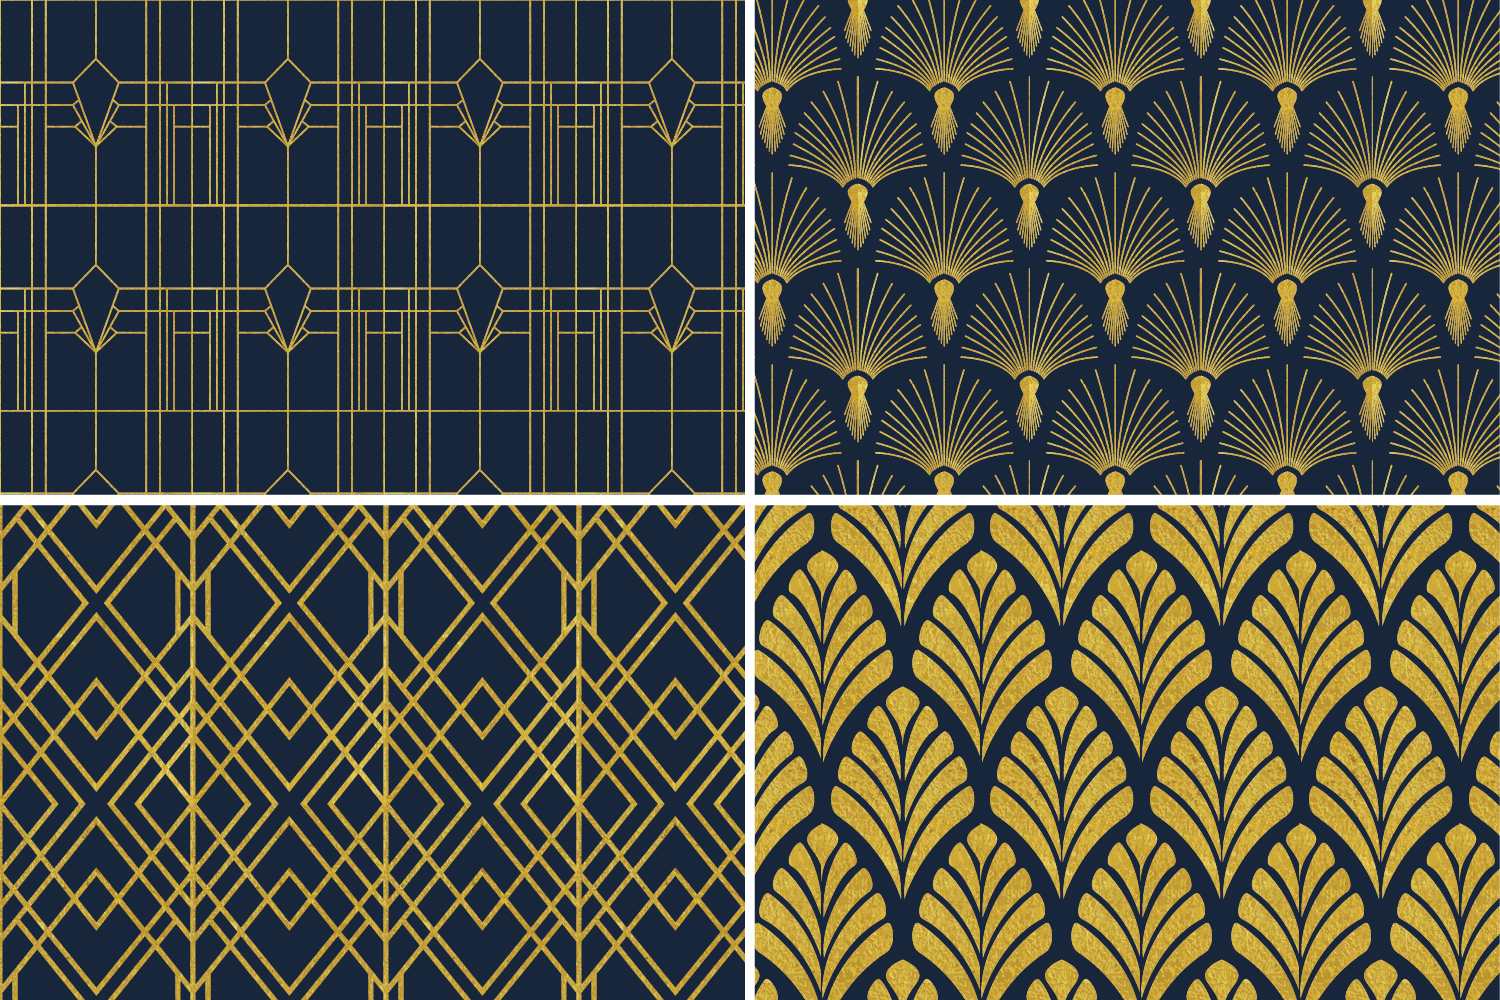 8 Seamless Art Deco Patterns - Gold & Navy Blue - Set 3 example image 5